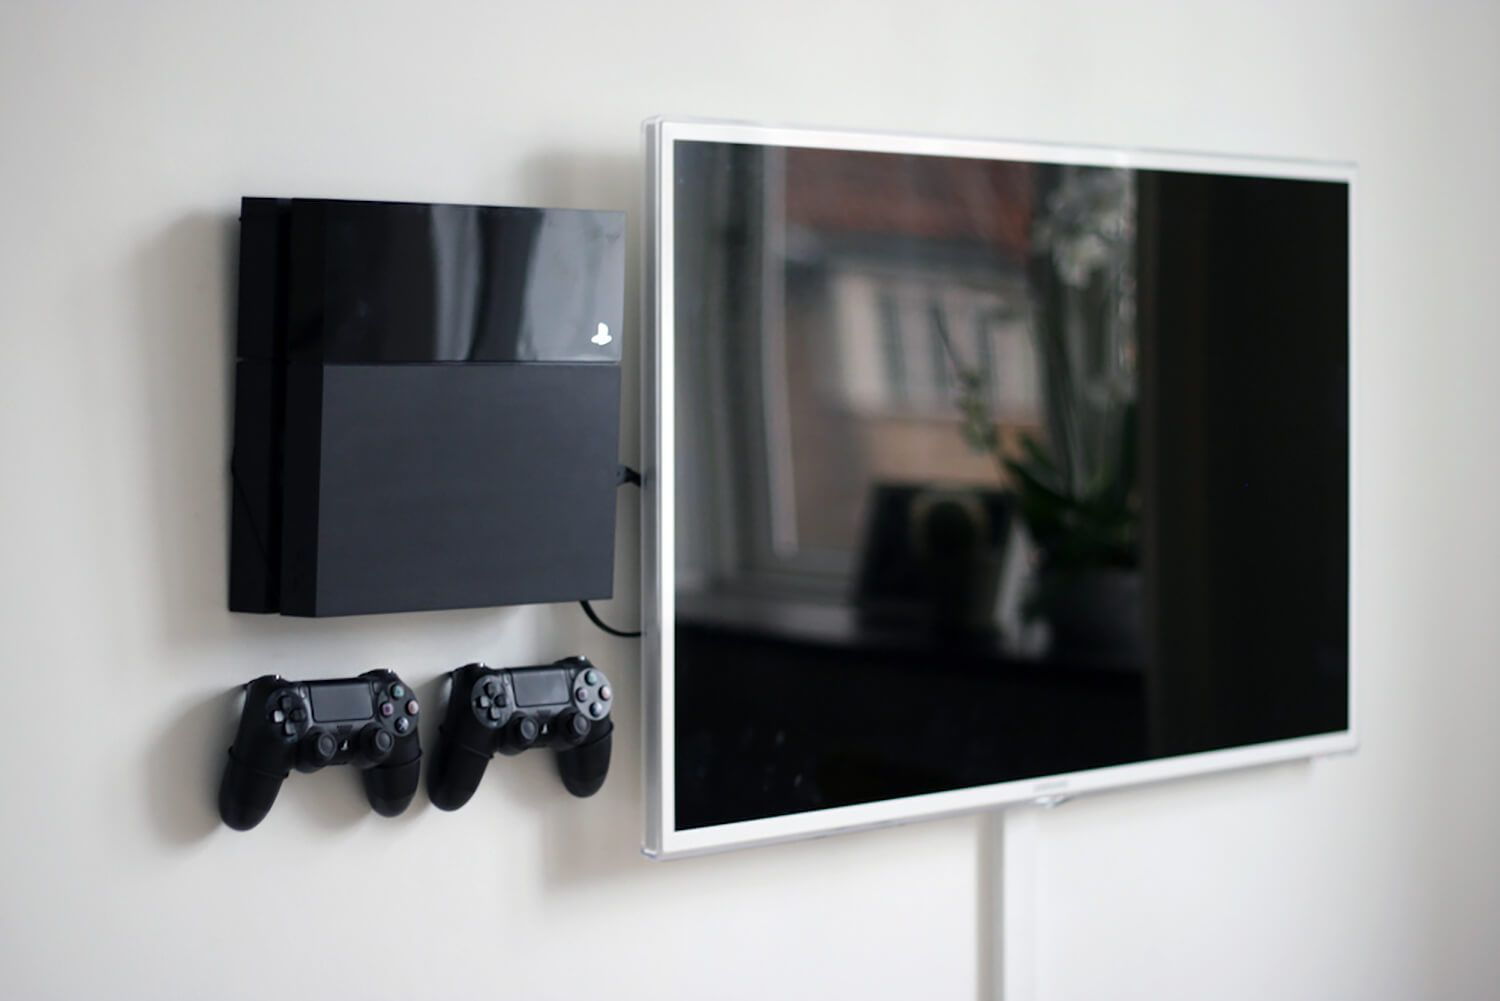 Playstation 4 Original Wall Mount For The Home Soporte